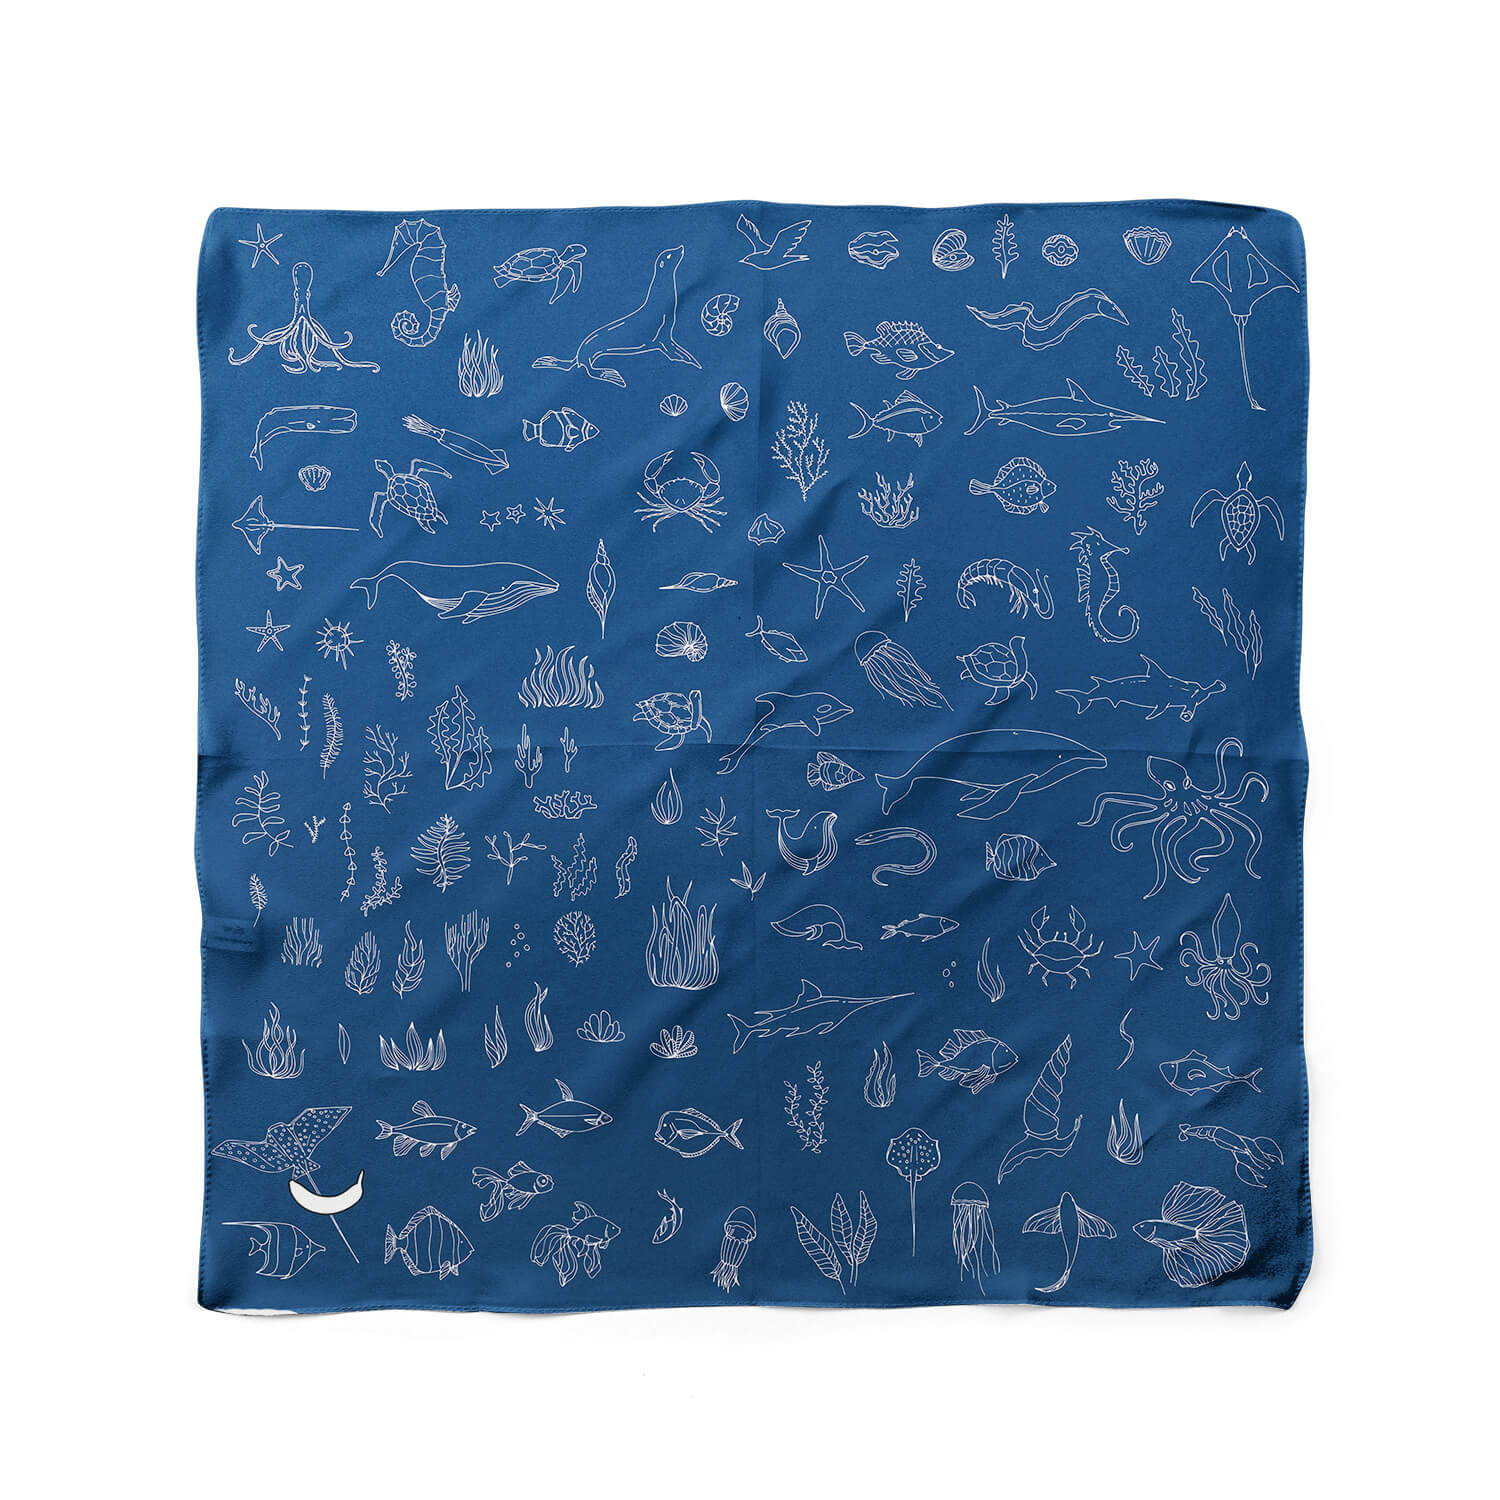 Banana Bandanas Motion in the Ocean dog bandana ocean creature fish dog bandana